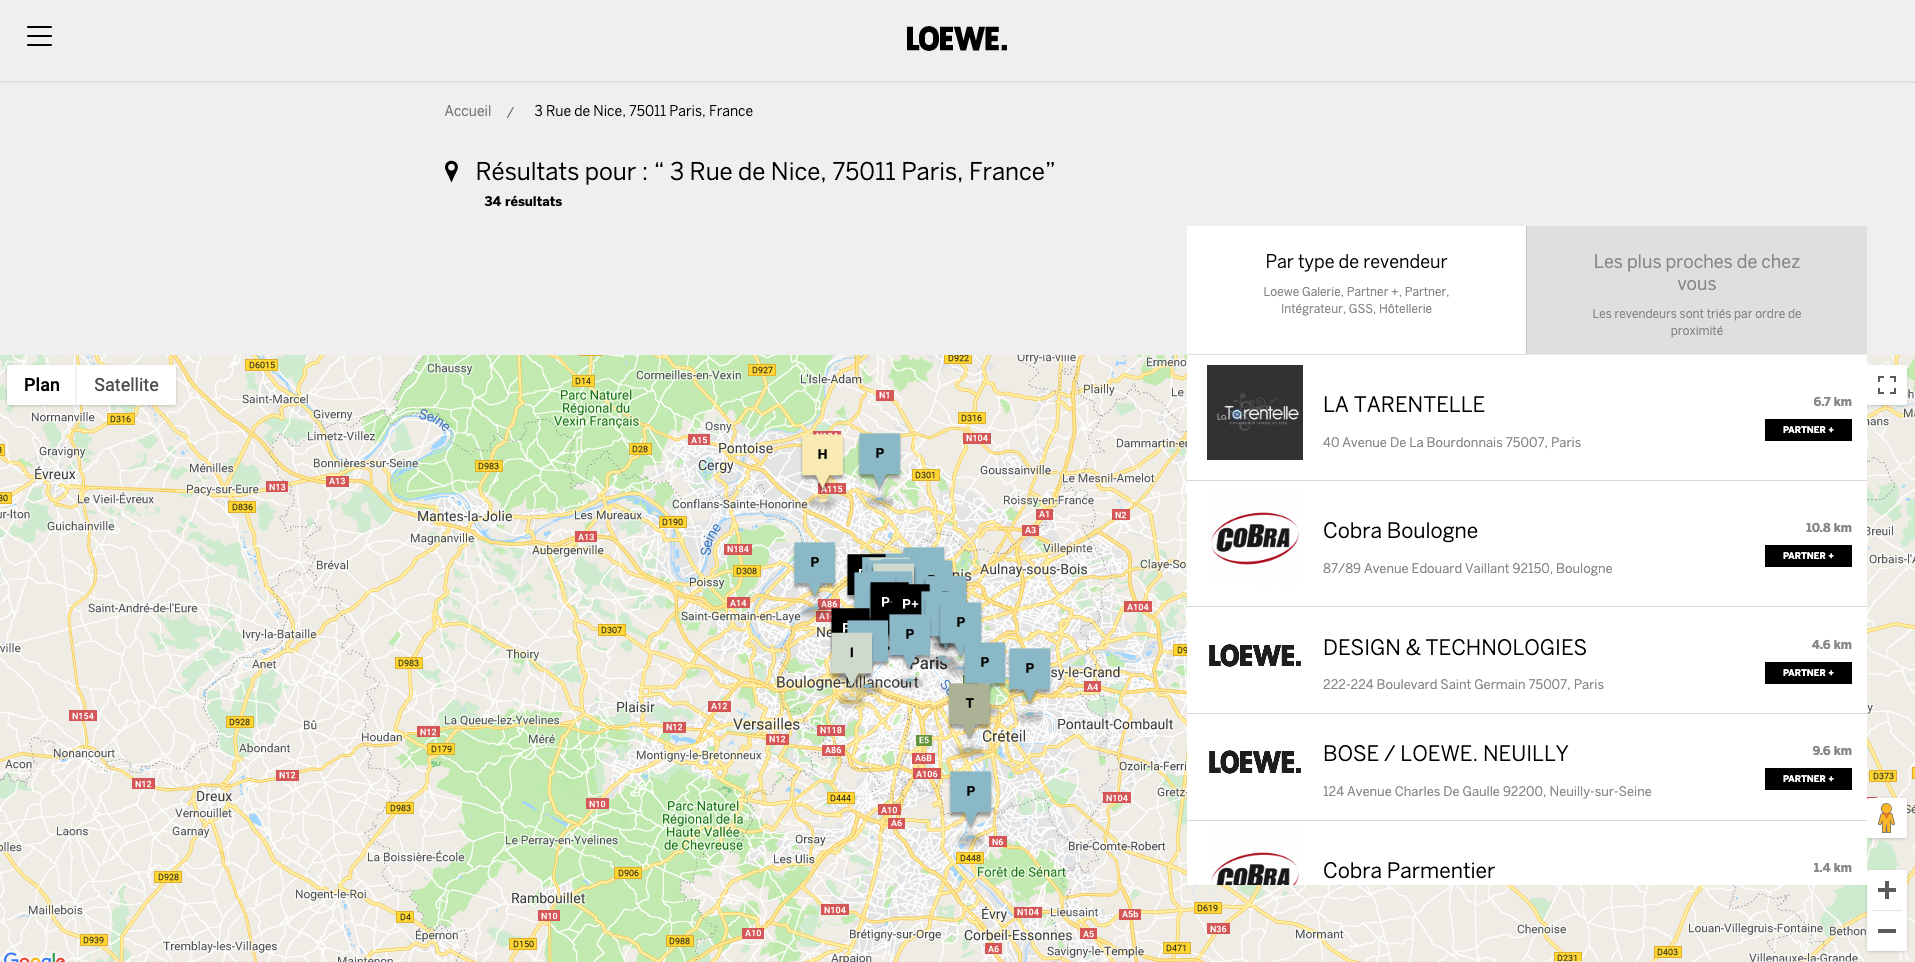 Store Locator - map view